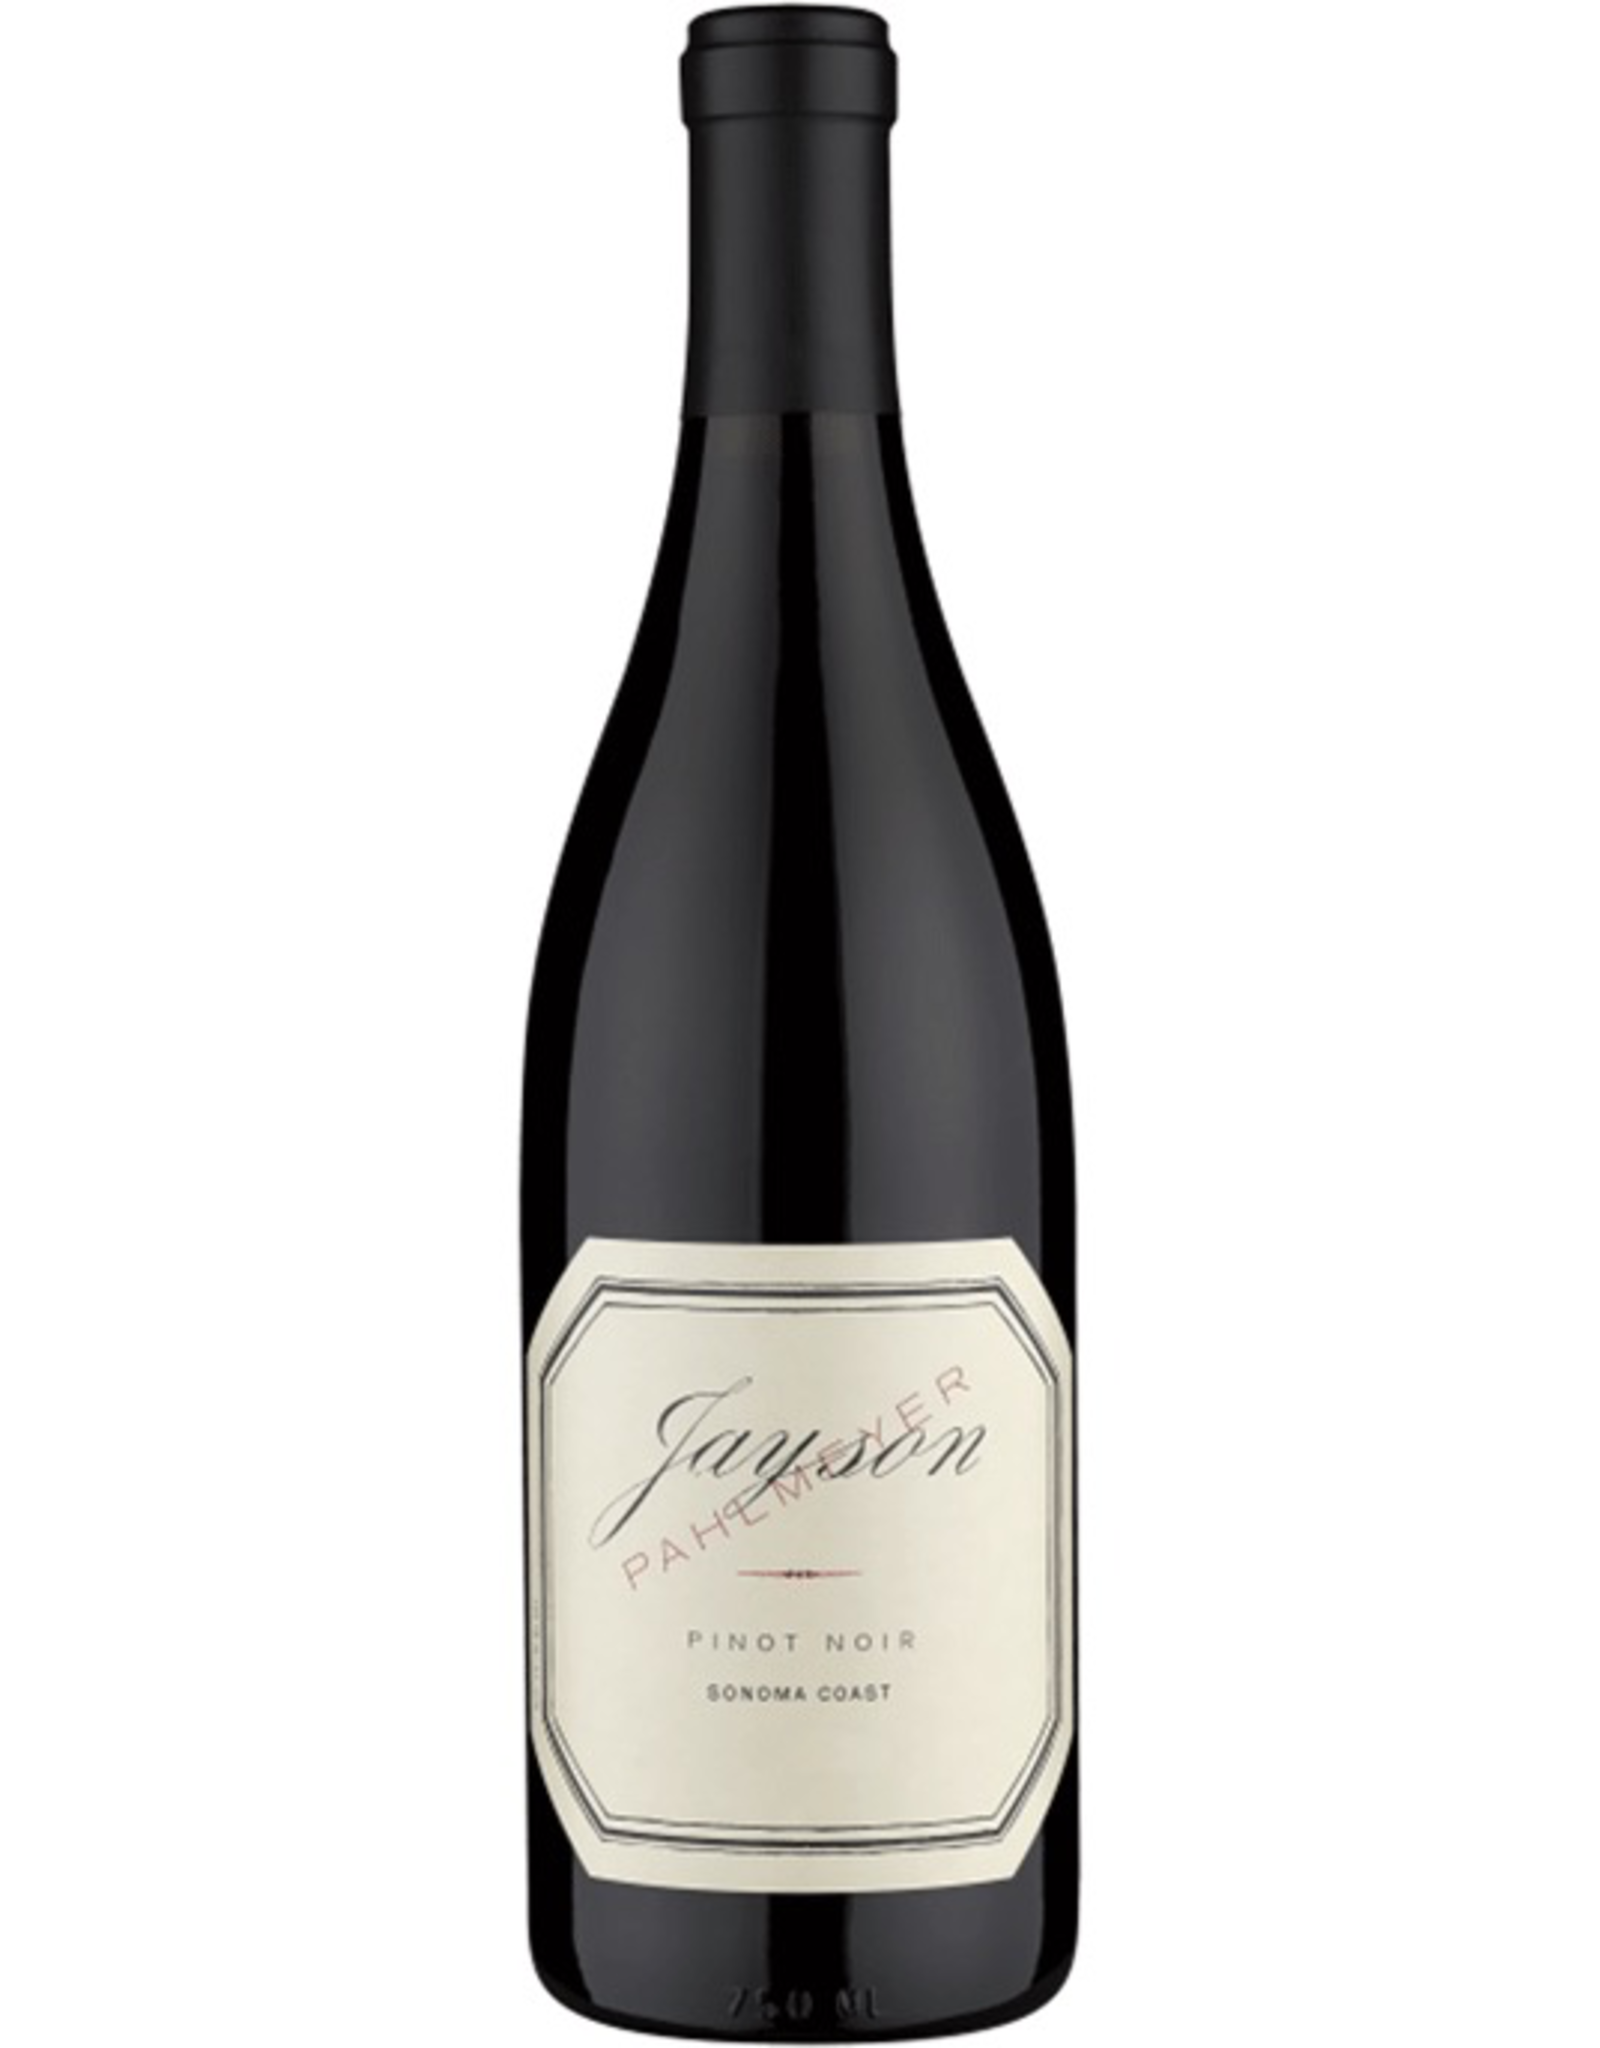 Red Wine 2014, Jayson by Pahlmeyer from Wayfarer Vineyard, Pinot Noir, Fort Ross Seaview, Sonoma County, California,14.5% Alc, CTnr, TW92